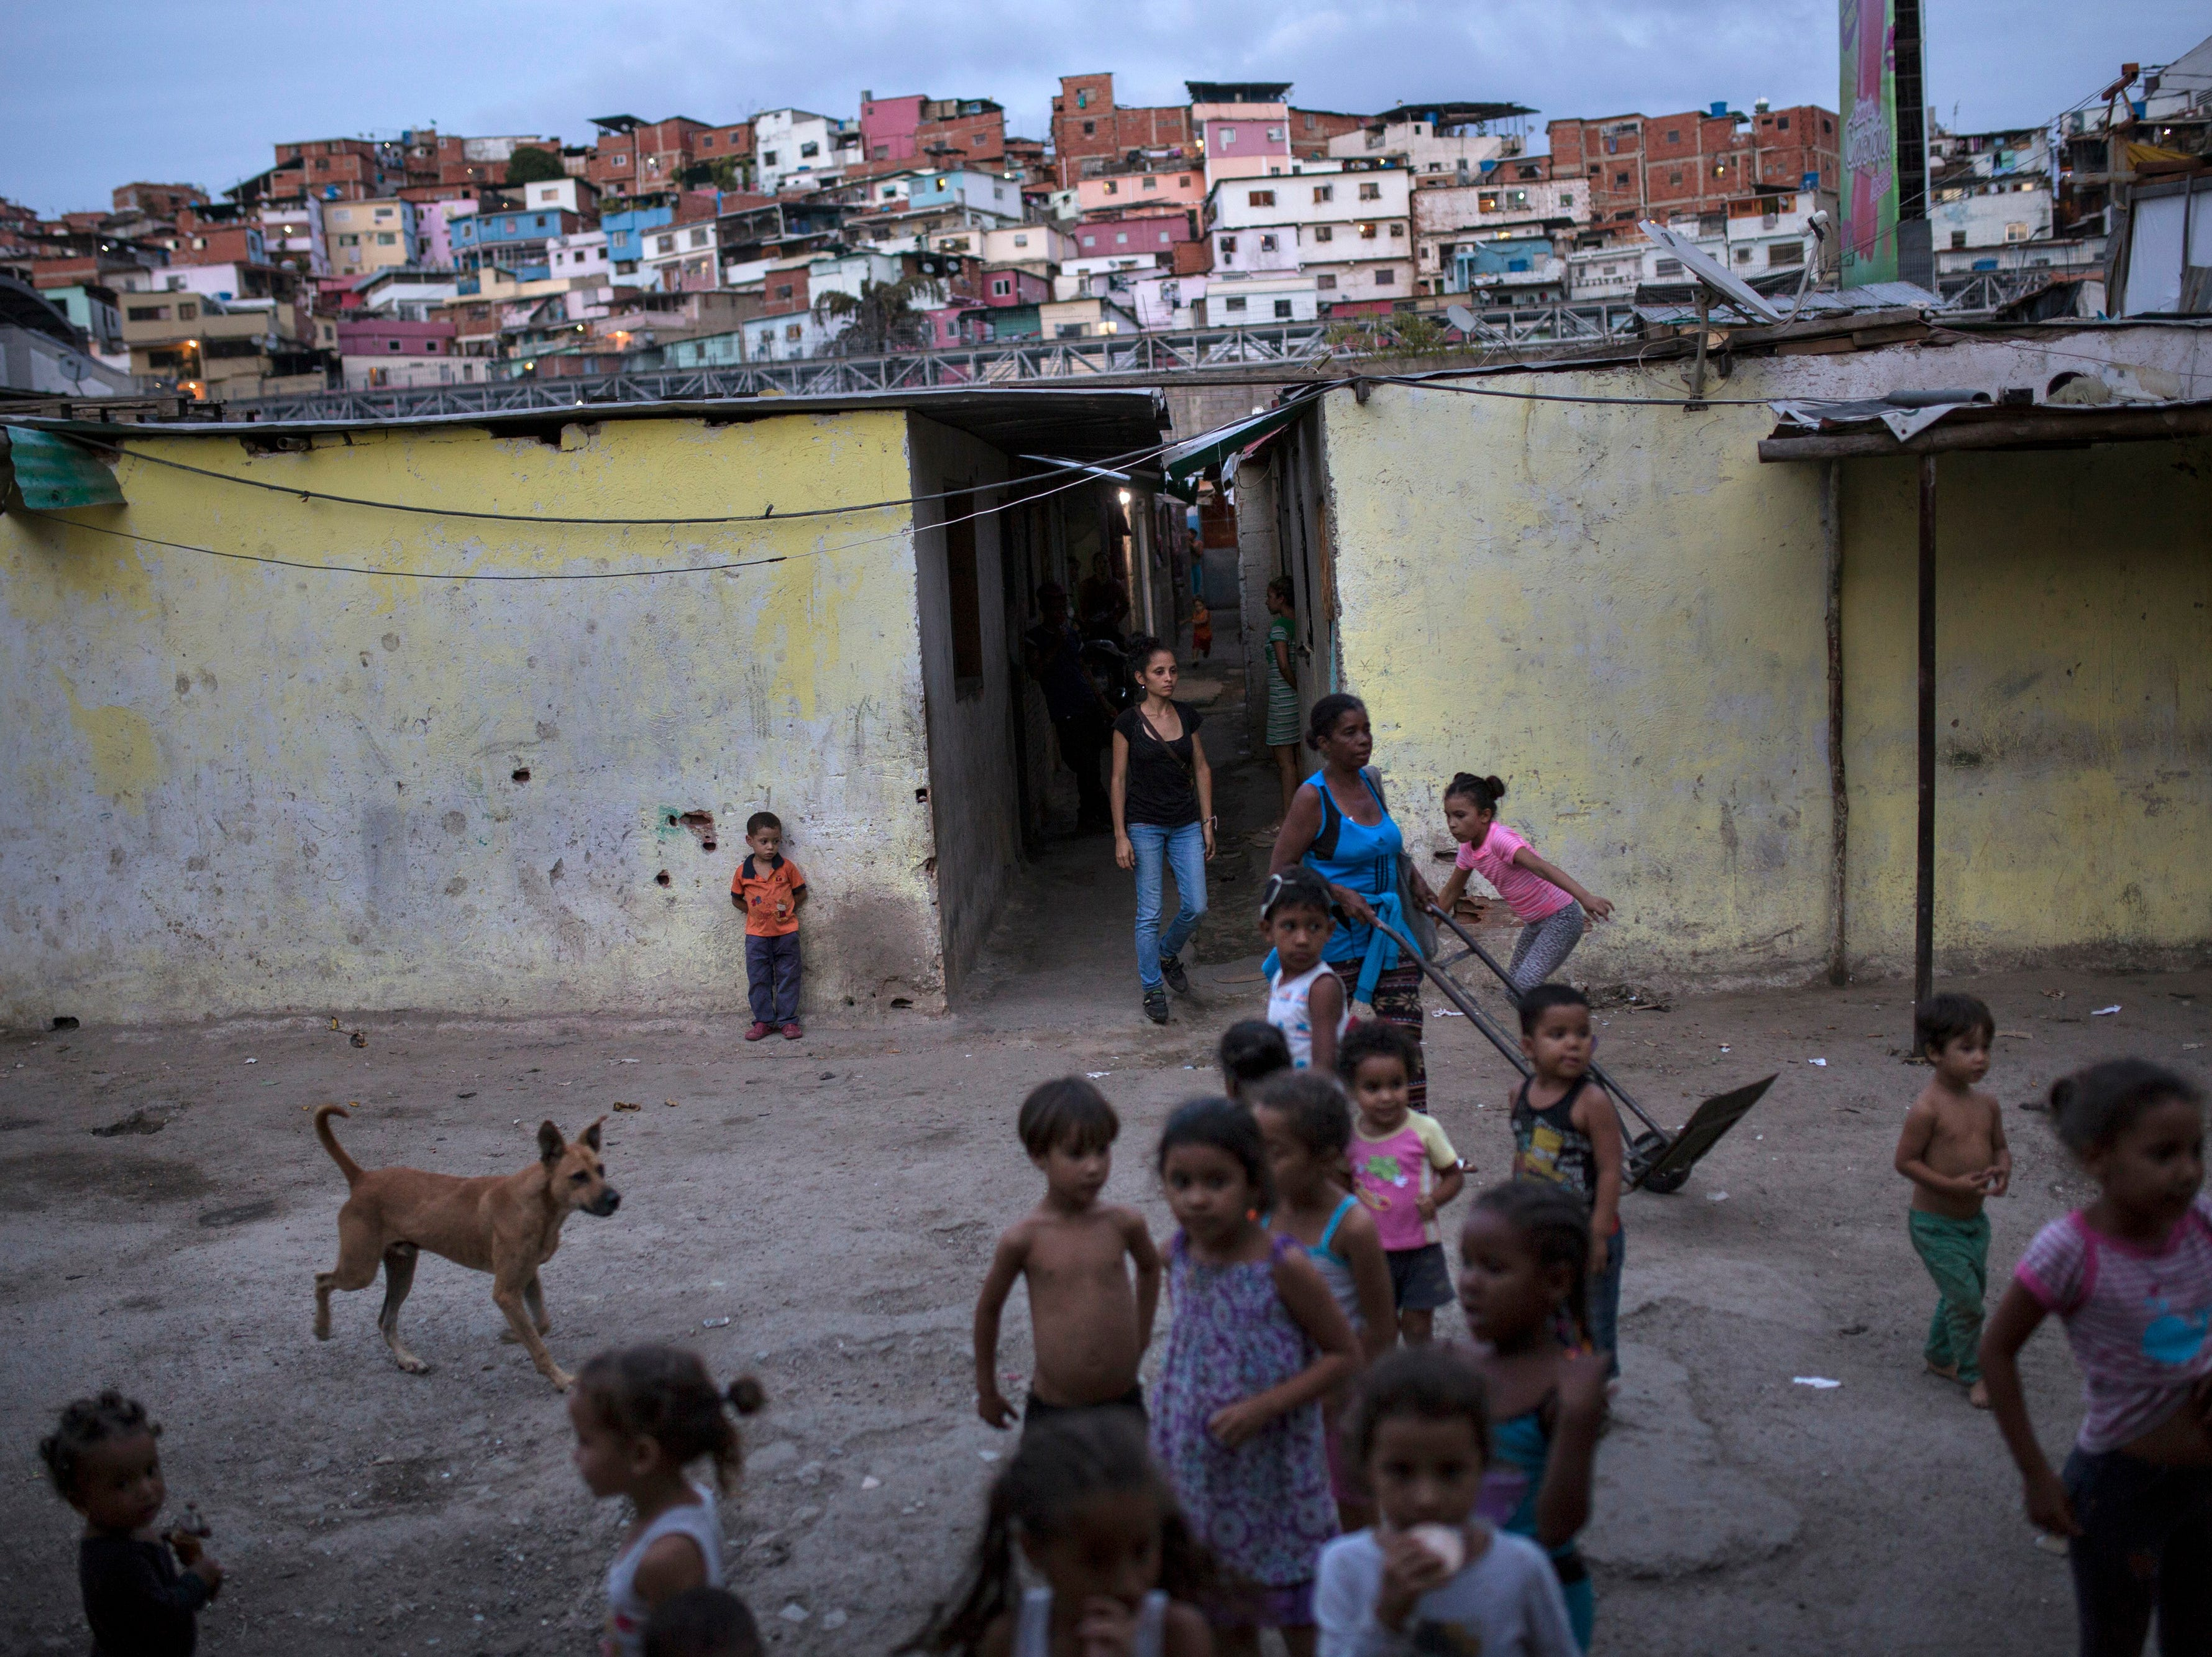 Children play at Los Hijos de Dios settlement, once an empty field owned by the government now occupied by about 60 families, in Caracas, Venezuela, Wednesday, May 8, 2019. More than 3 million Venezuelans have left their homeland in recent years amid skyrocketing inflation and shortages of food and medicine. U.S. administration officials have warned that 2 million more are expected to flee by the end of the year if the crisis continues in the oil-rich nation.